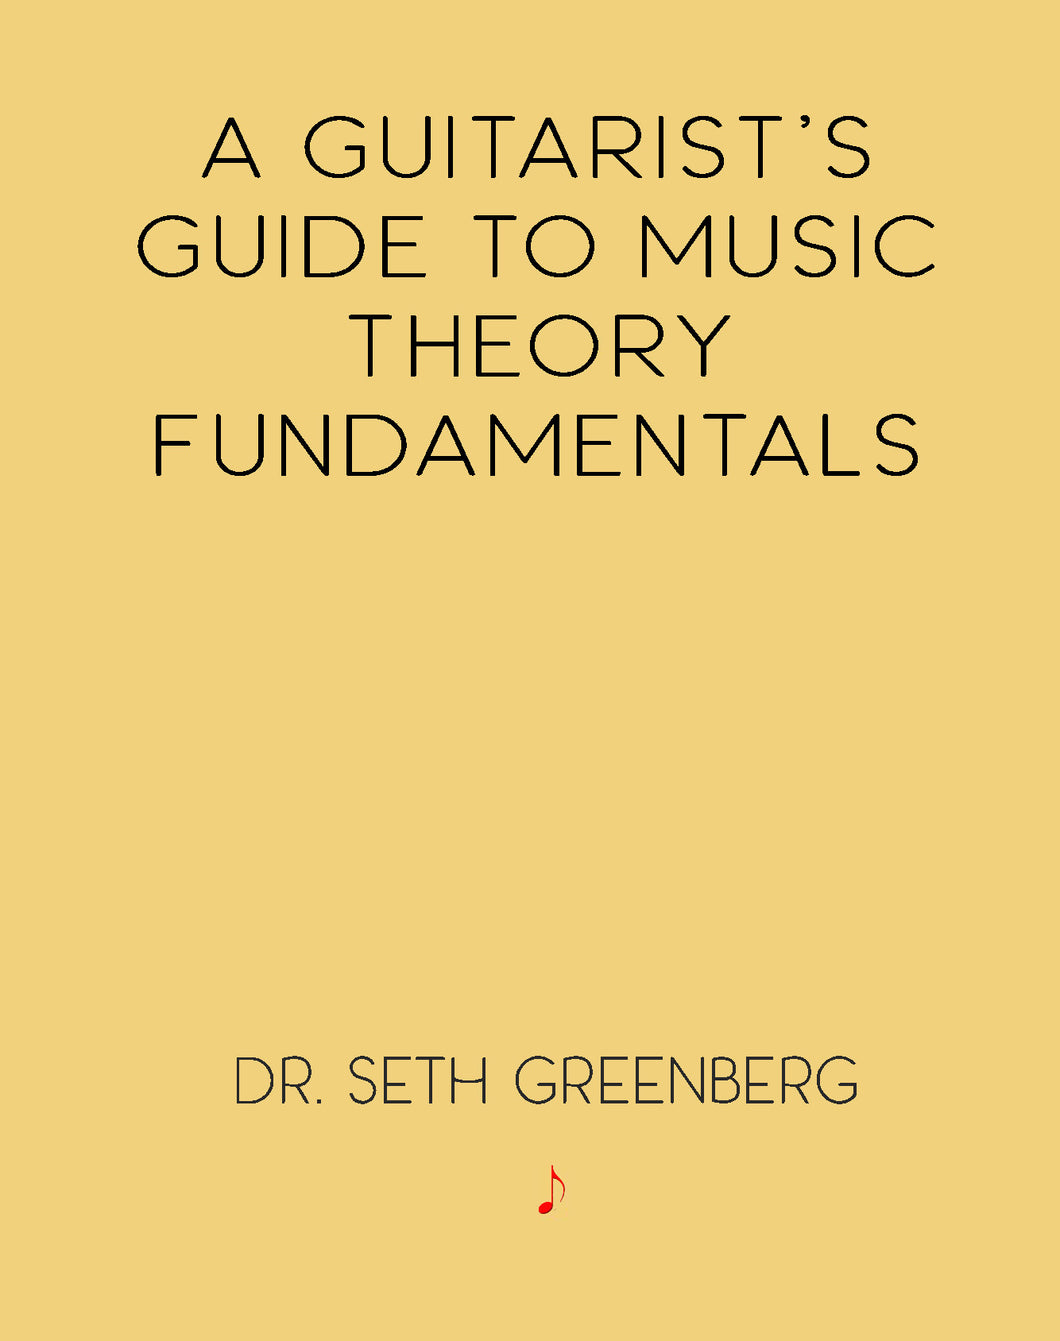 A Guitarist's Guide to Music Theory Fundamentals